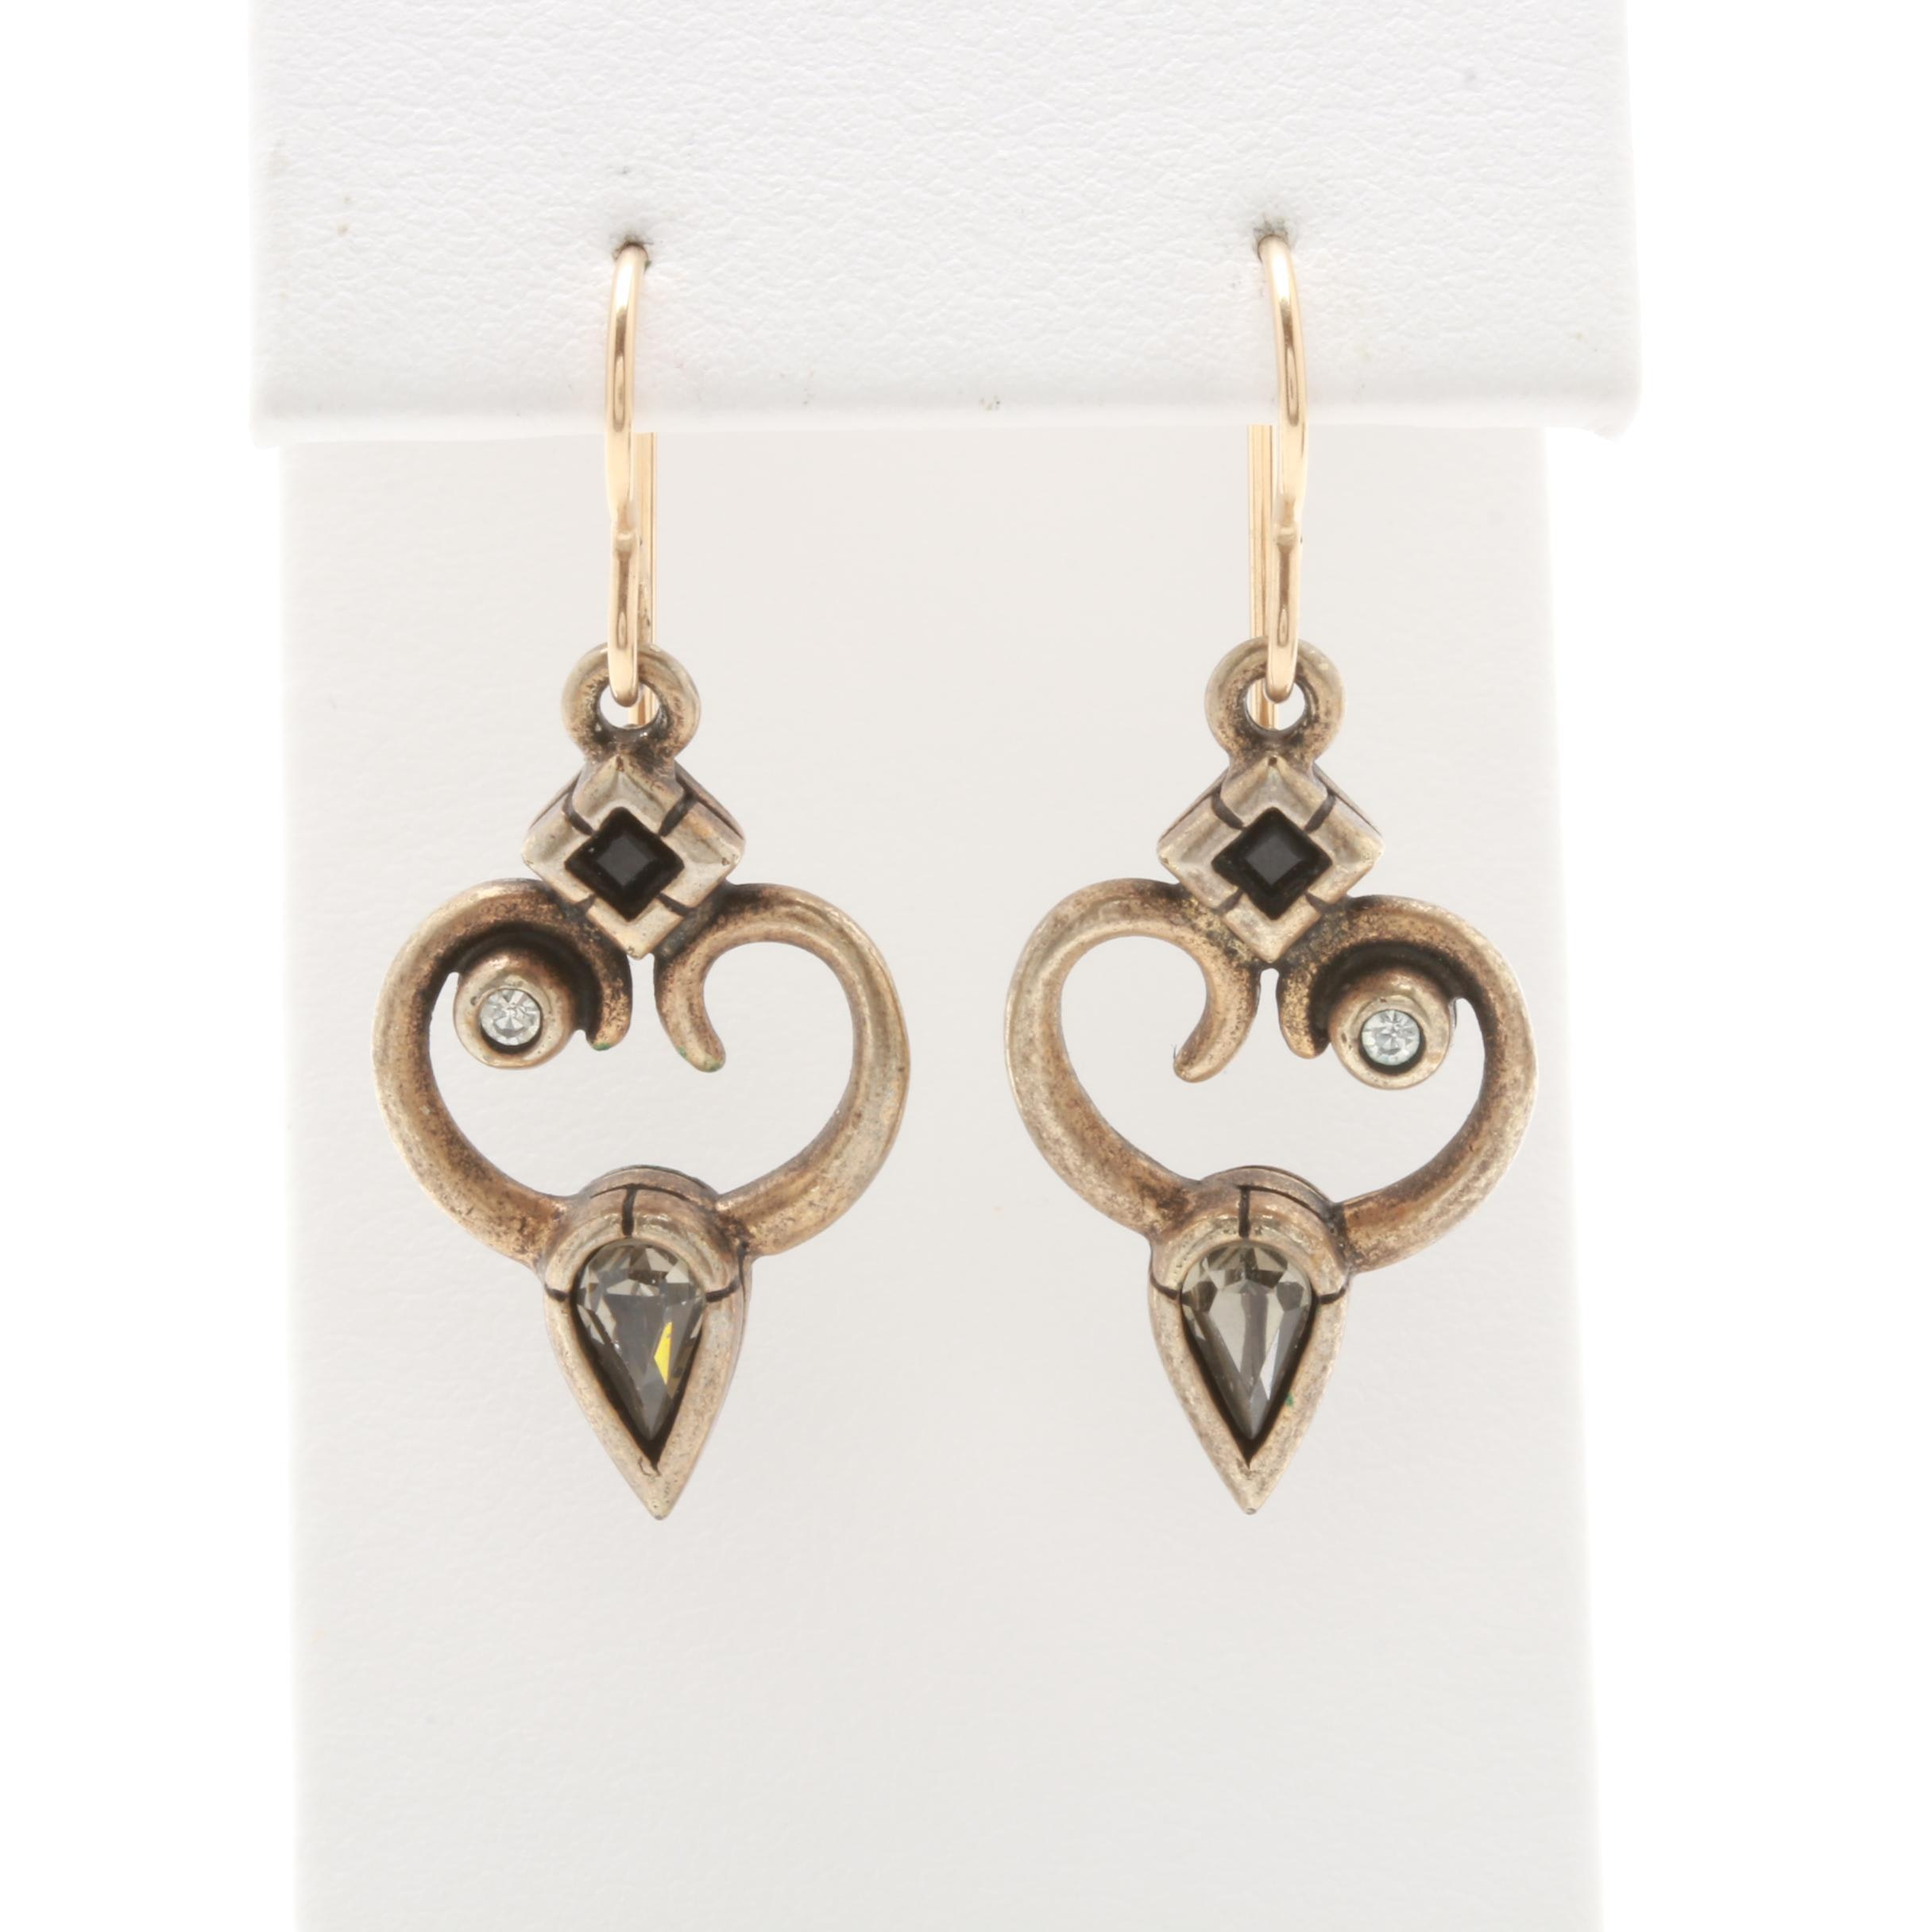 Patricia Locke Glass Earrings with 10K Yellow Gold Accents